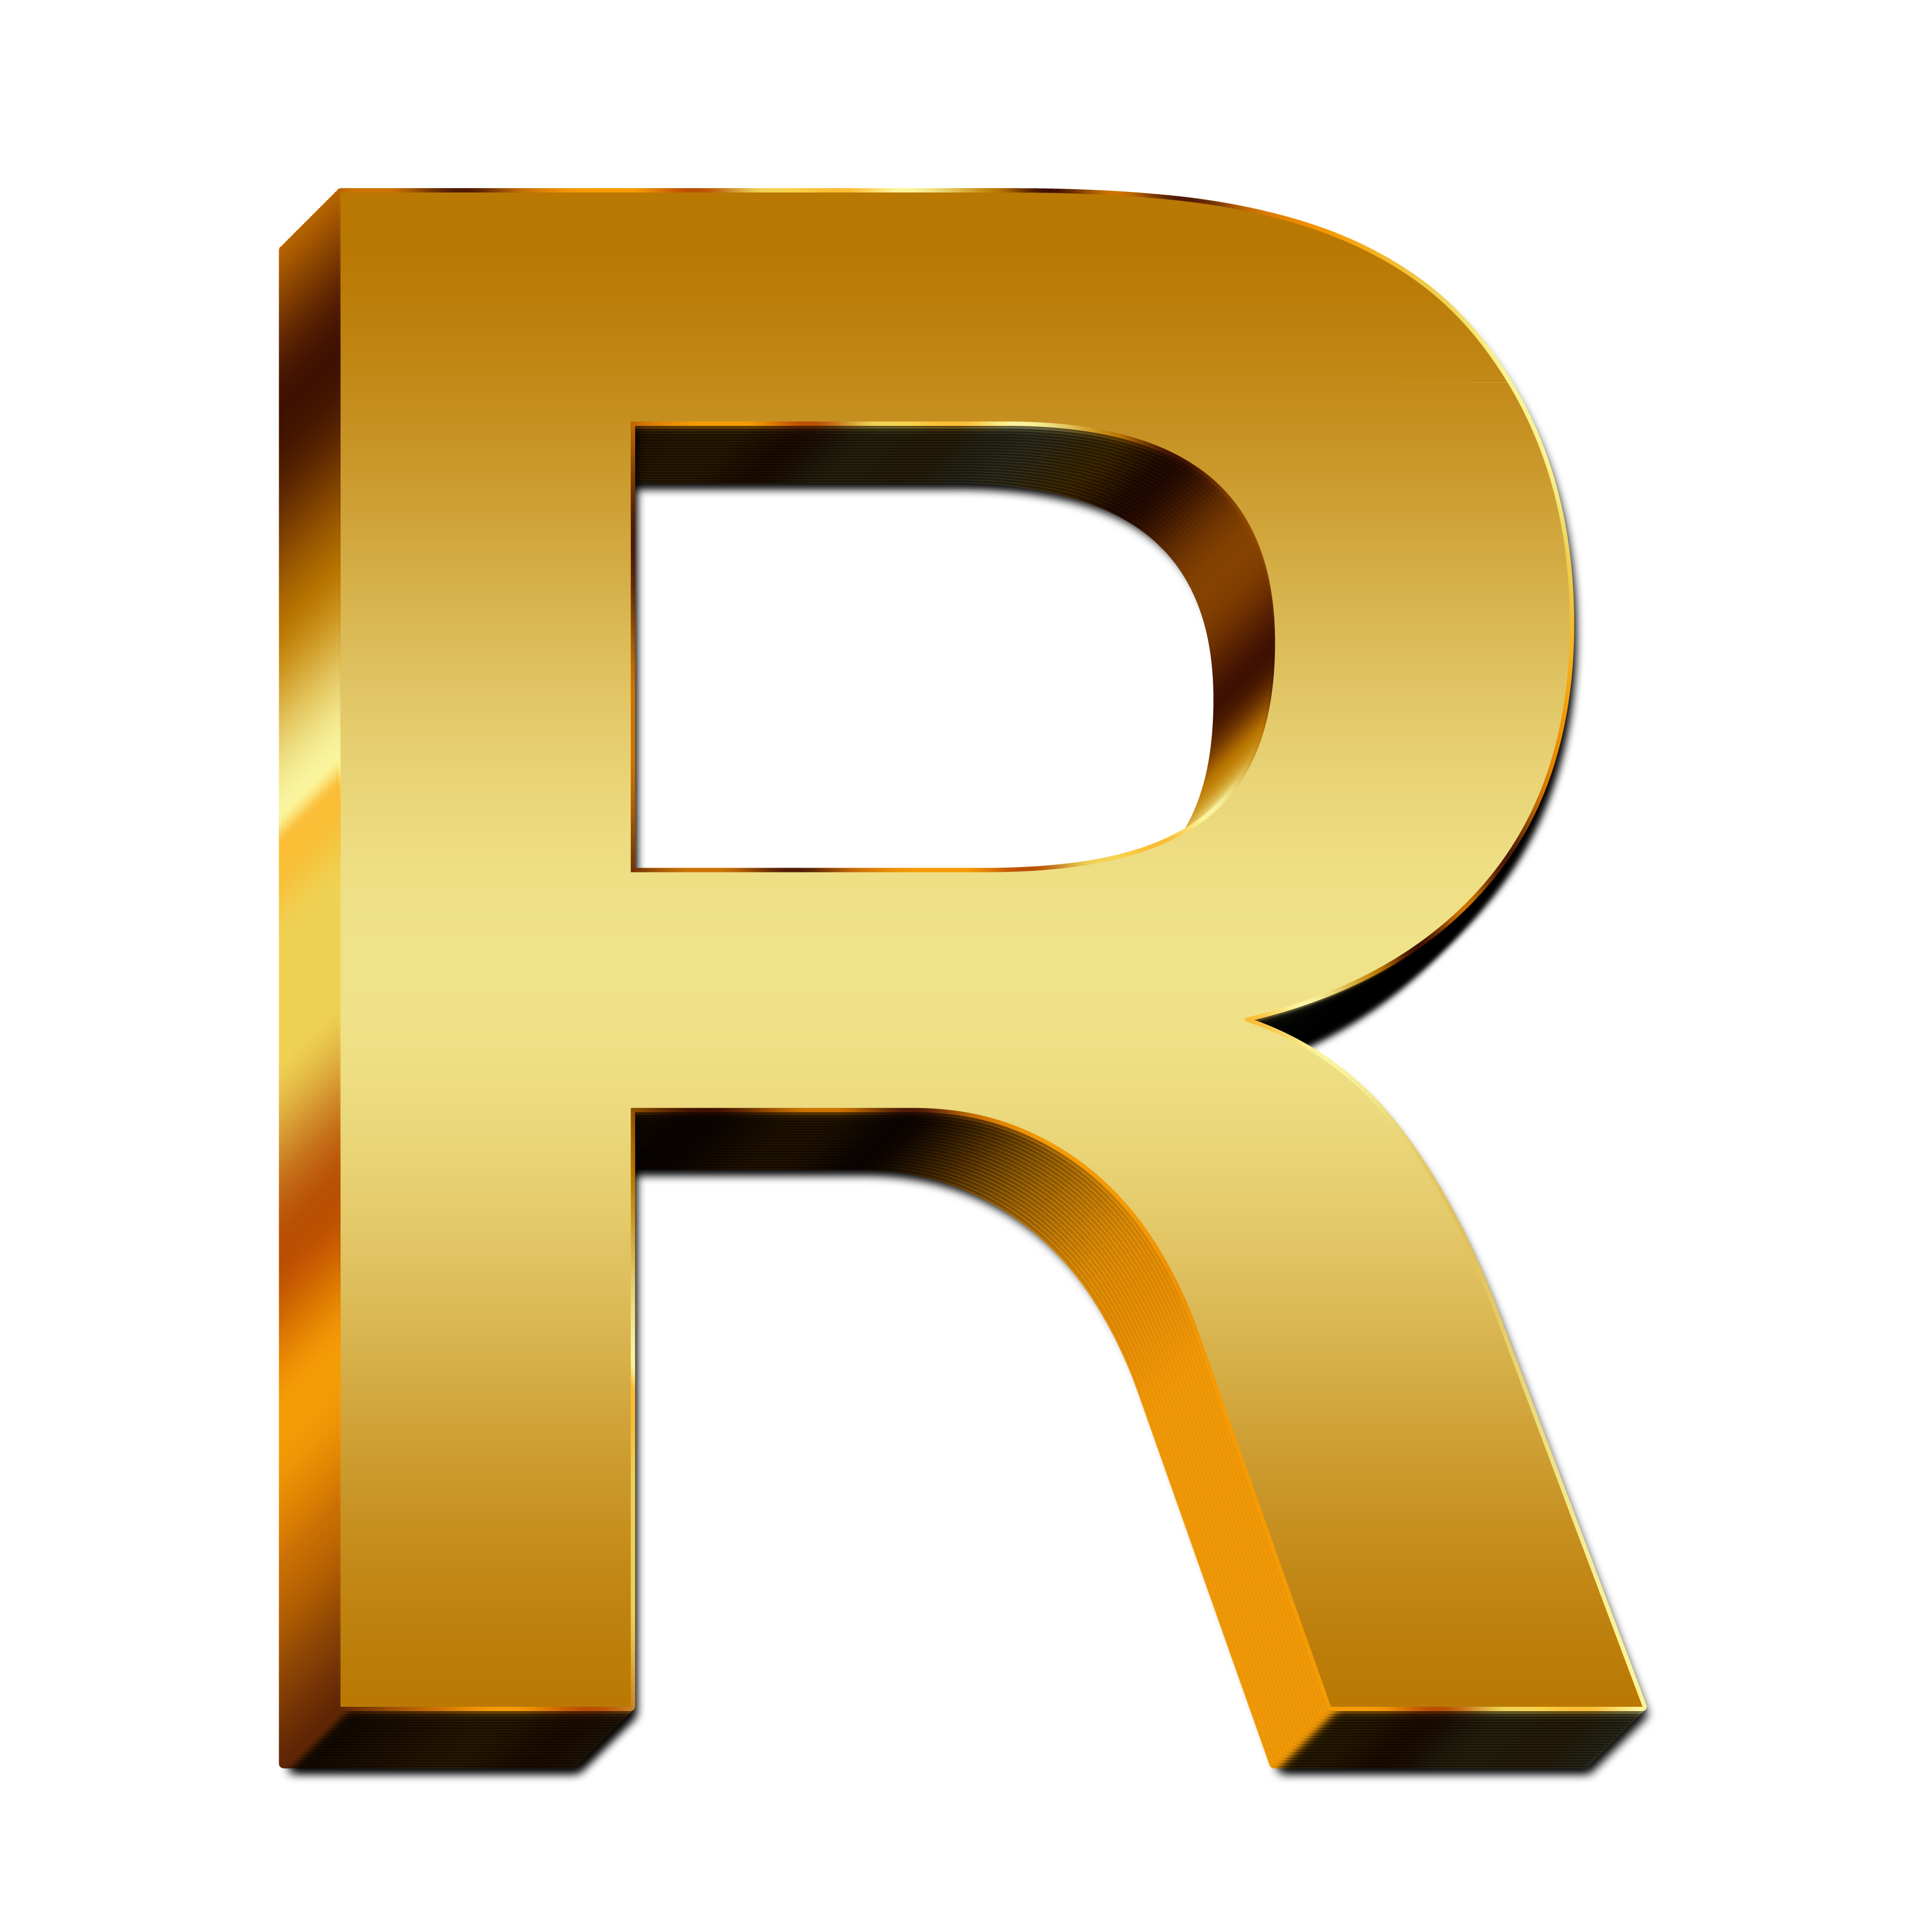 R clipart letter number. Capital free image